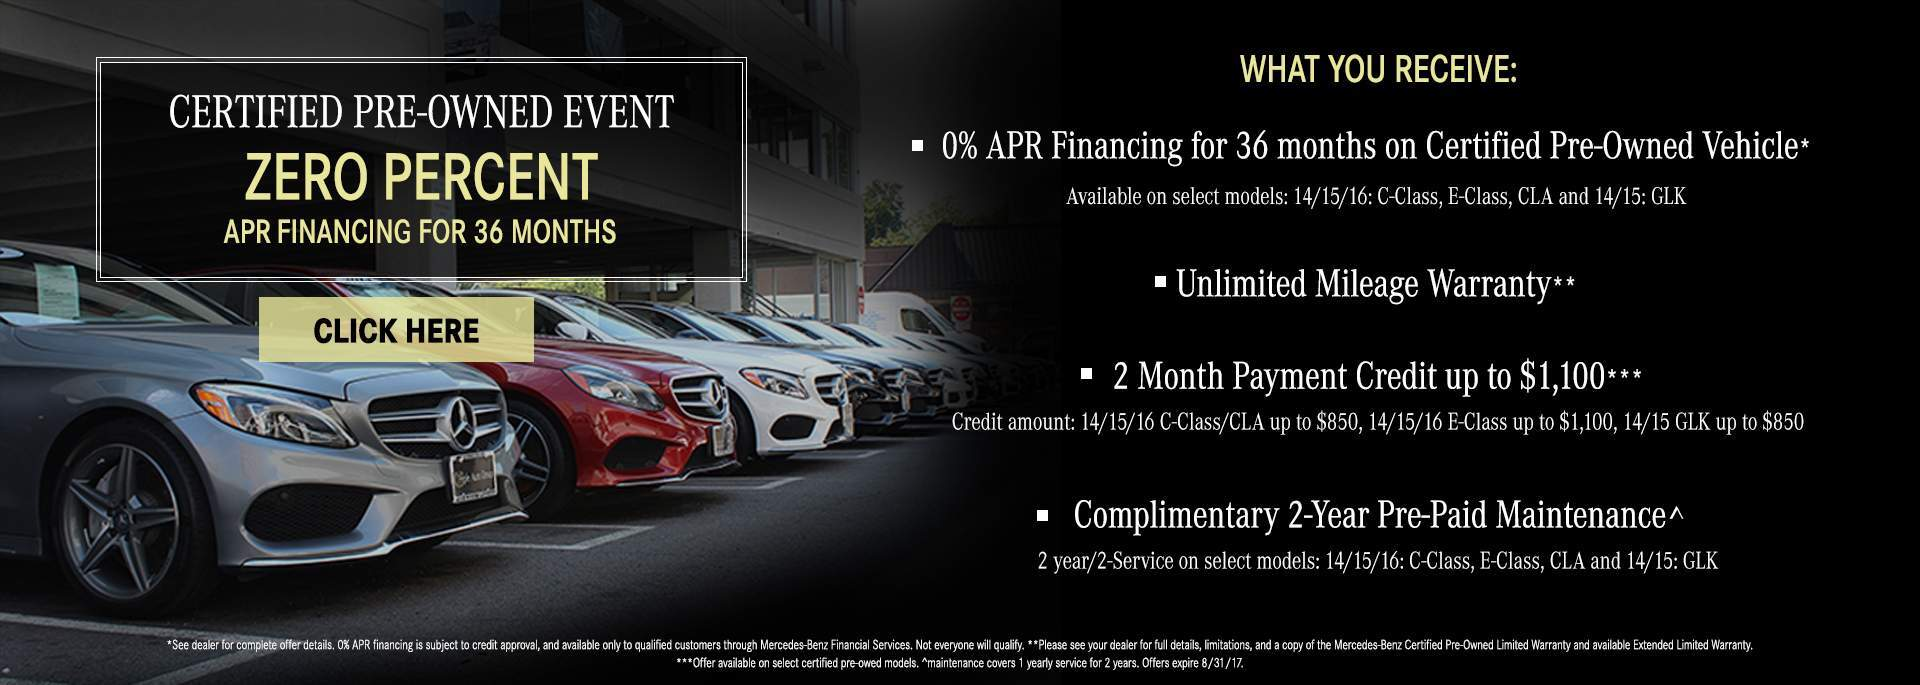 White plains new york mercedes benz dealership mercedes for Mercedes benz certified pre owned warranty